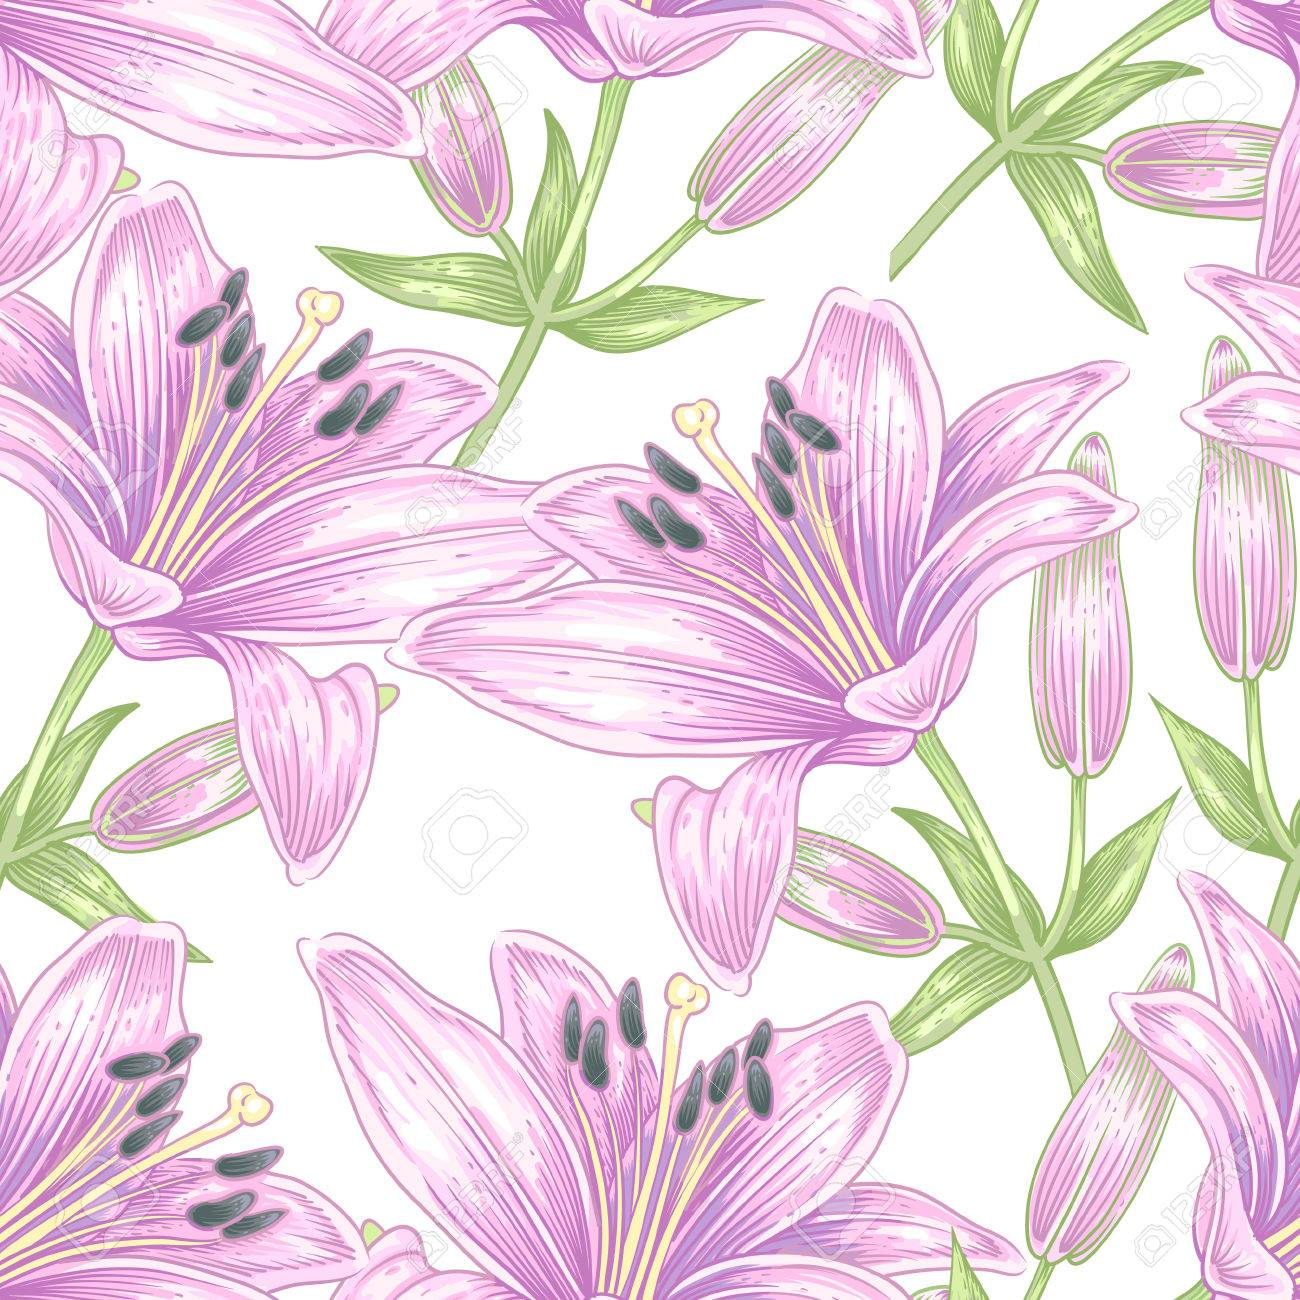 Seamless Vector Pattern Illustration Lily Flowers Designs For